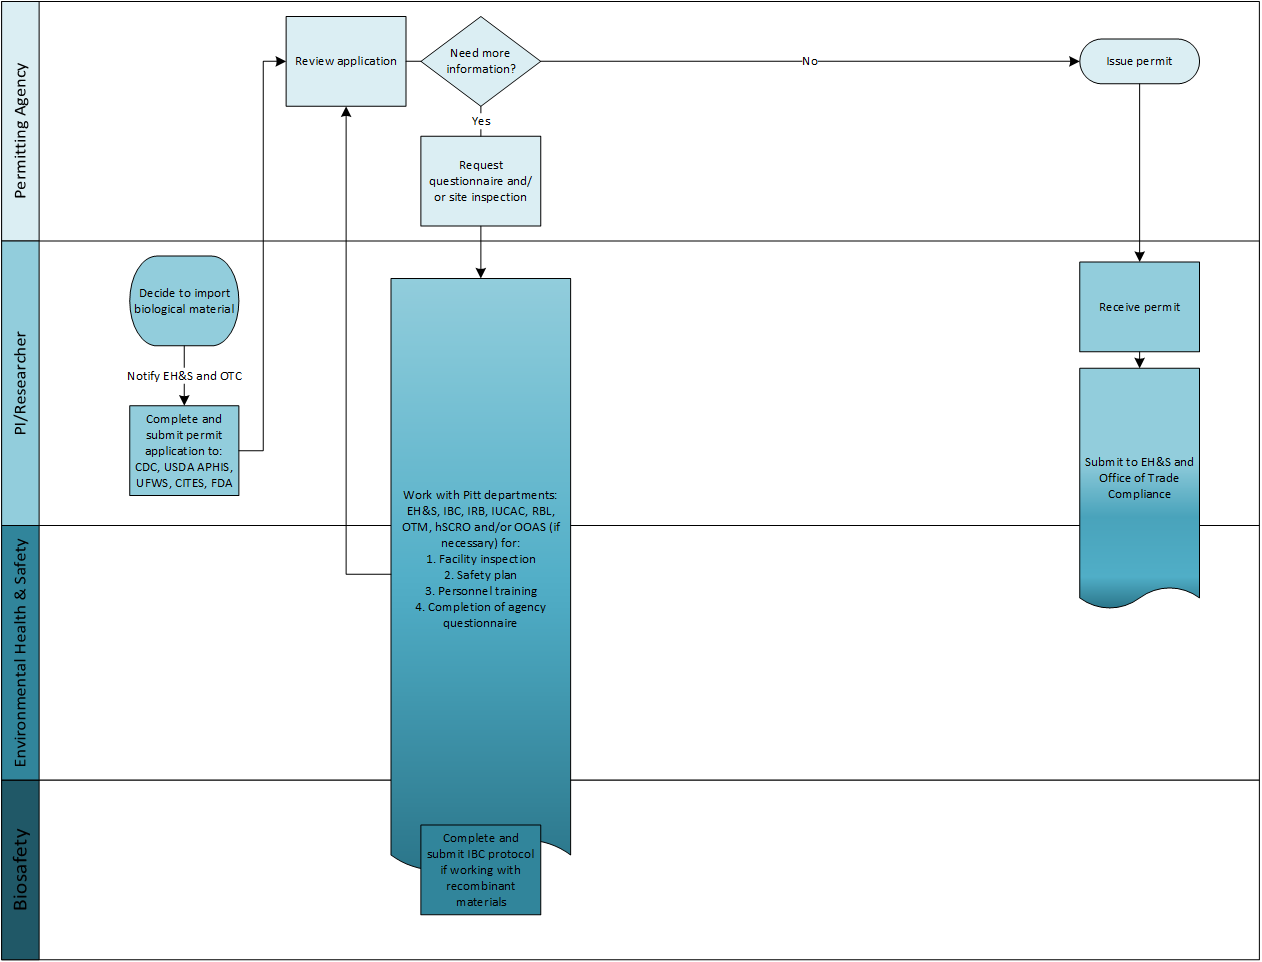 Flowchart outlining the process of material transfer agreement approval by the university of government regulating departments